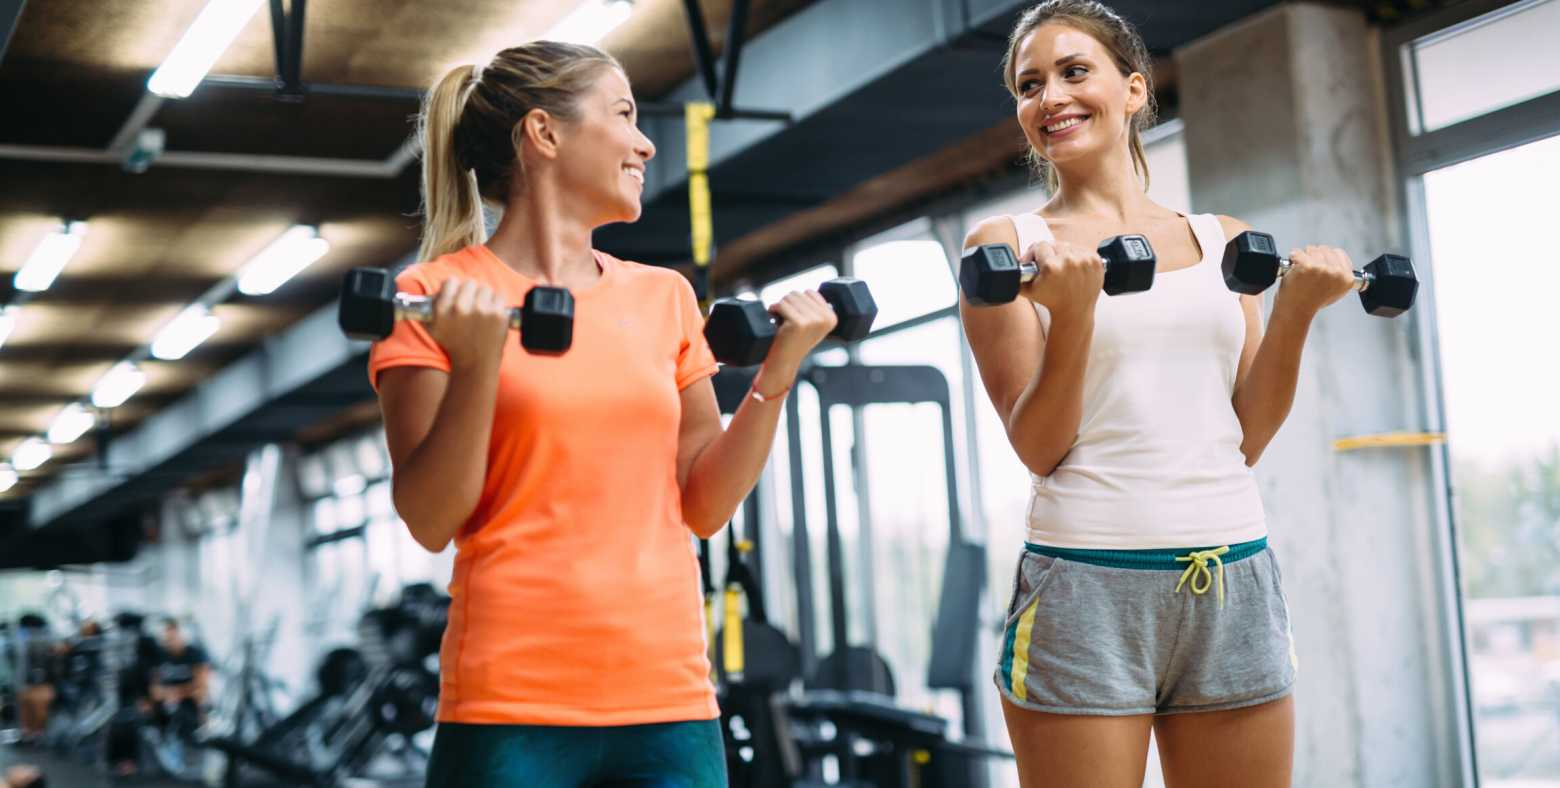 women lifting weights in the gym